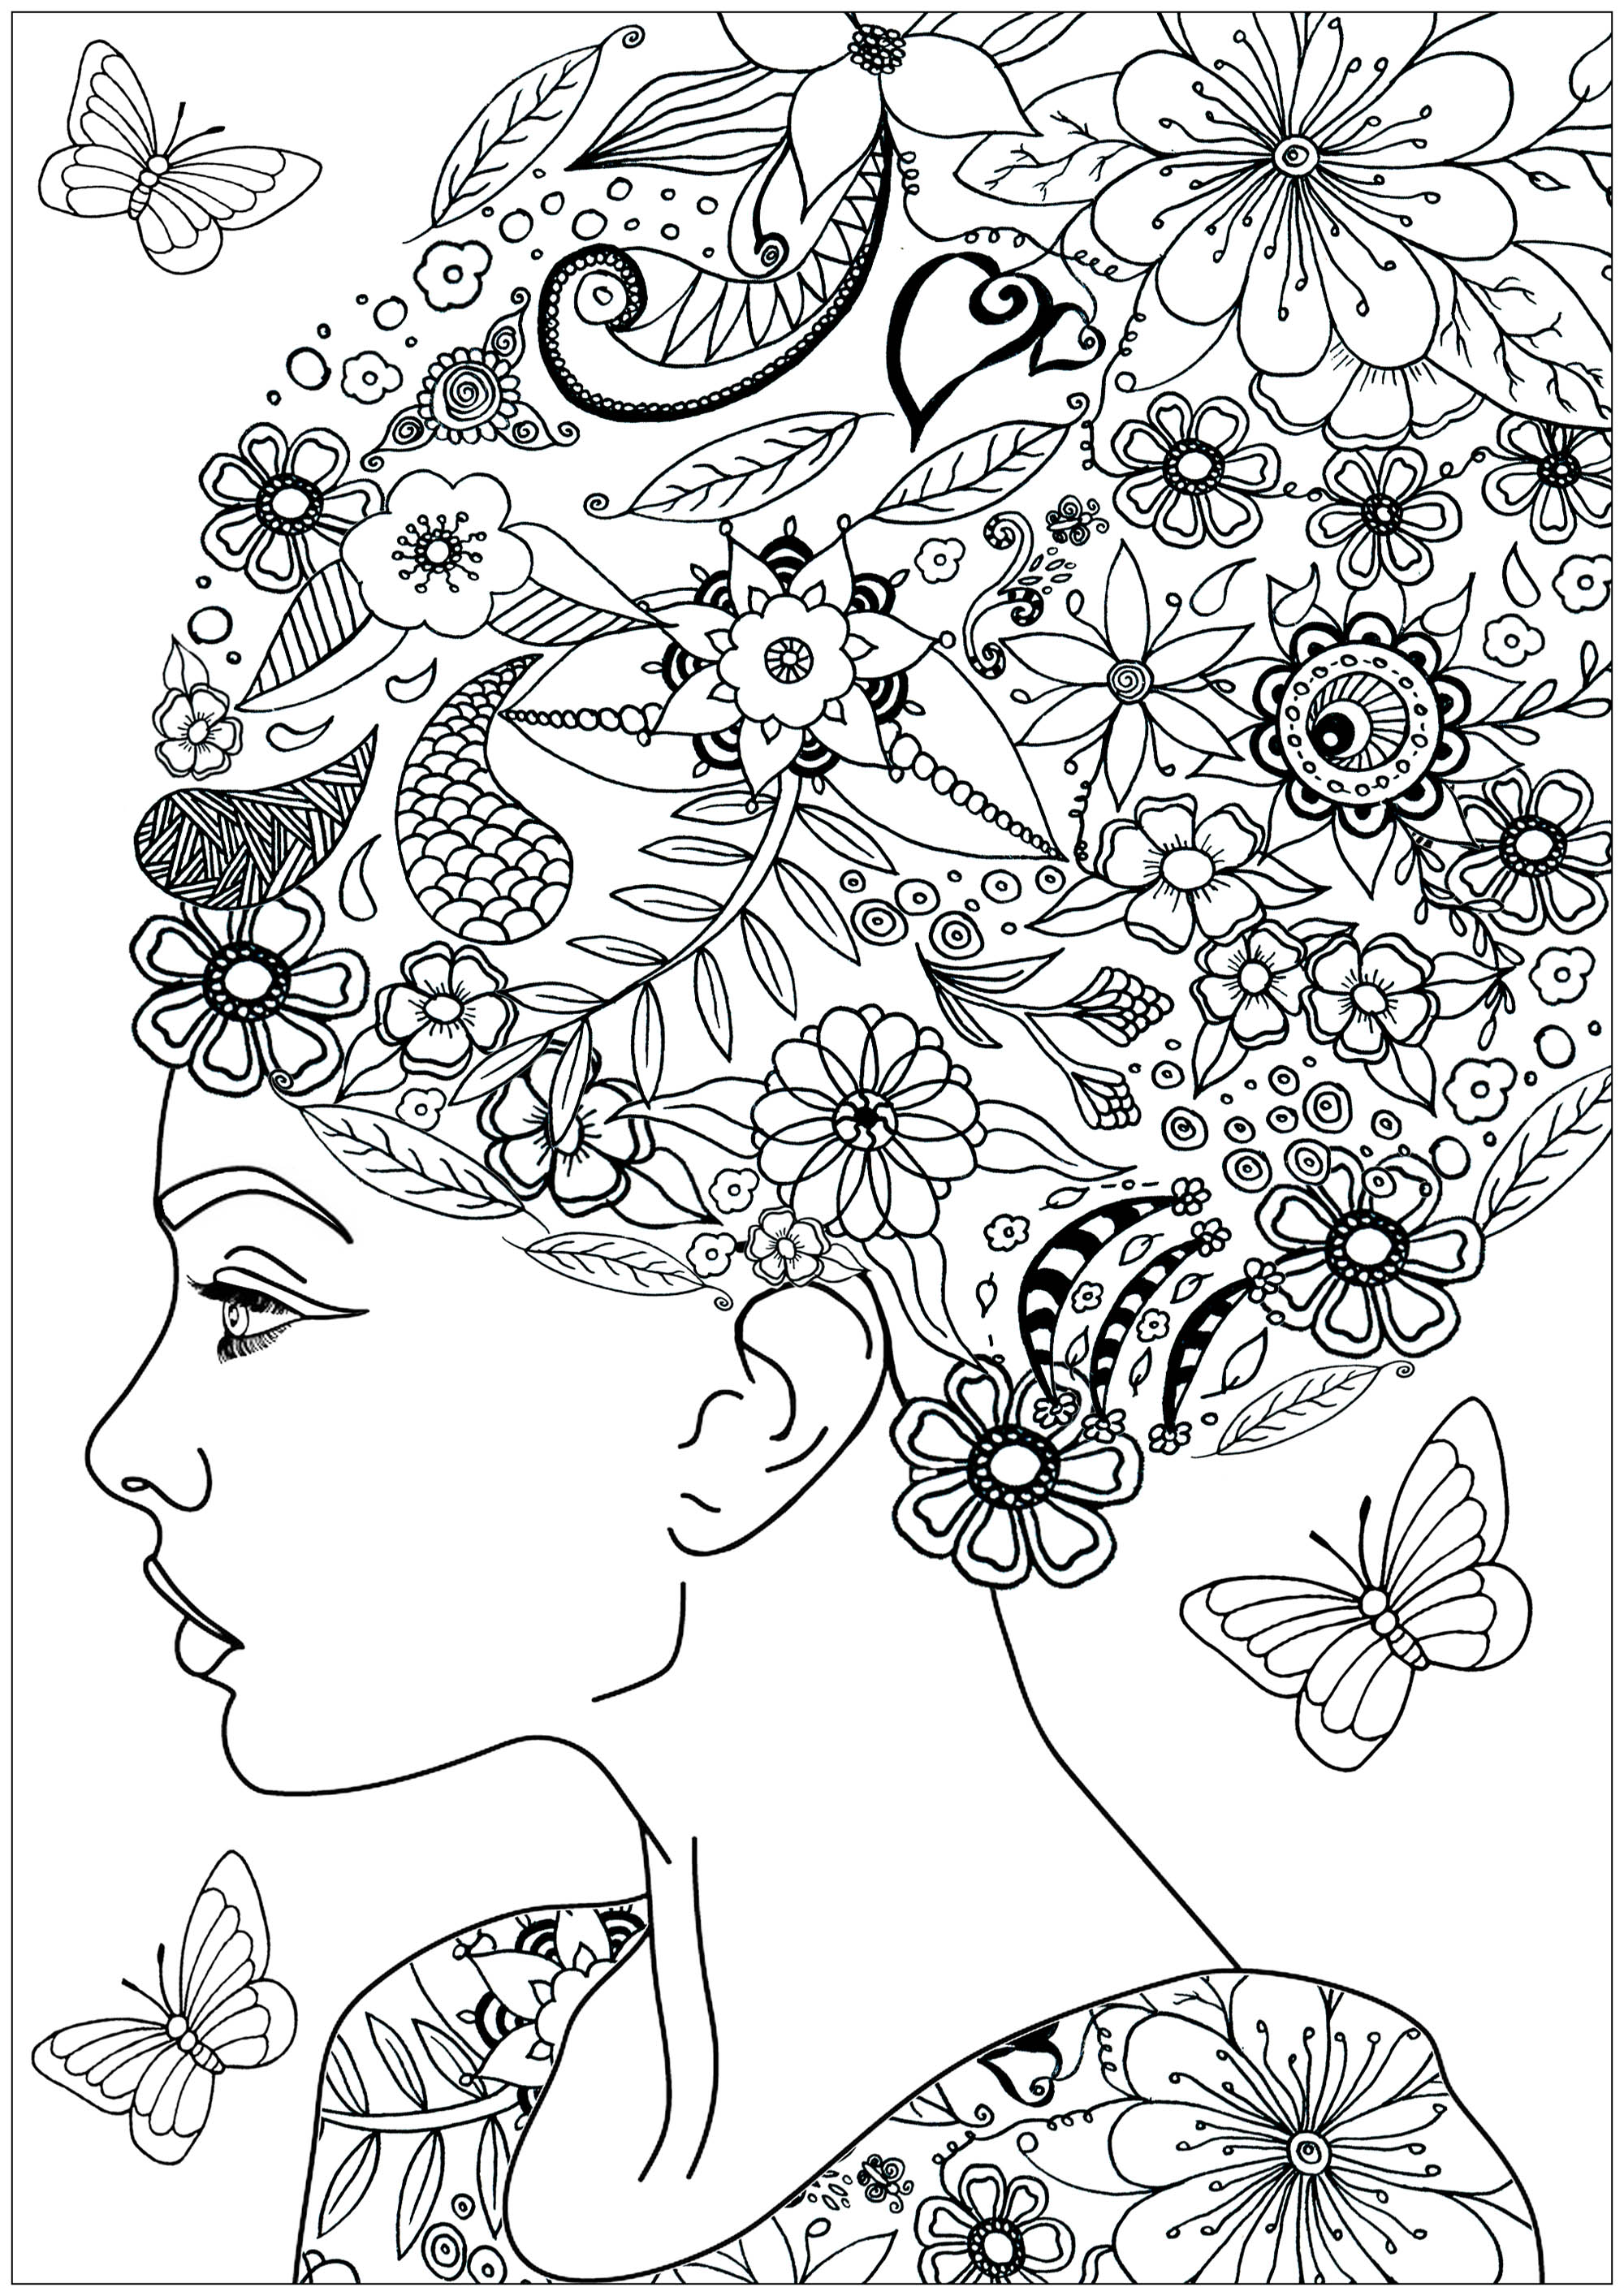 Woman with flowery hair